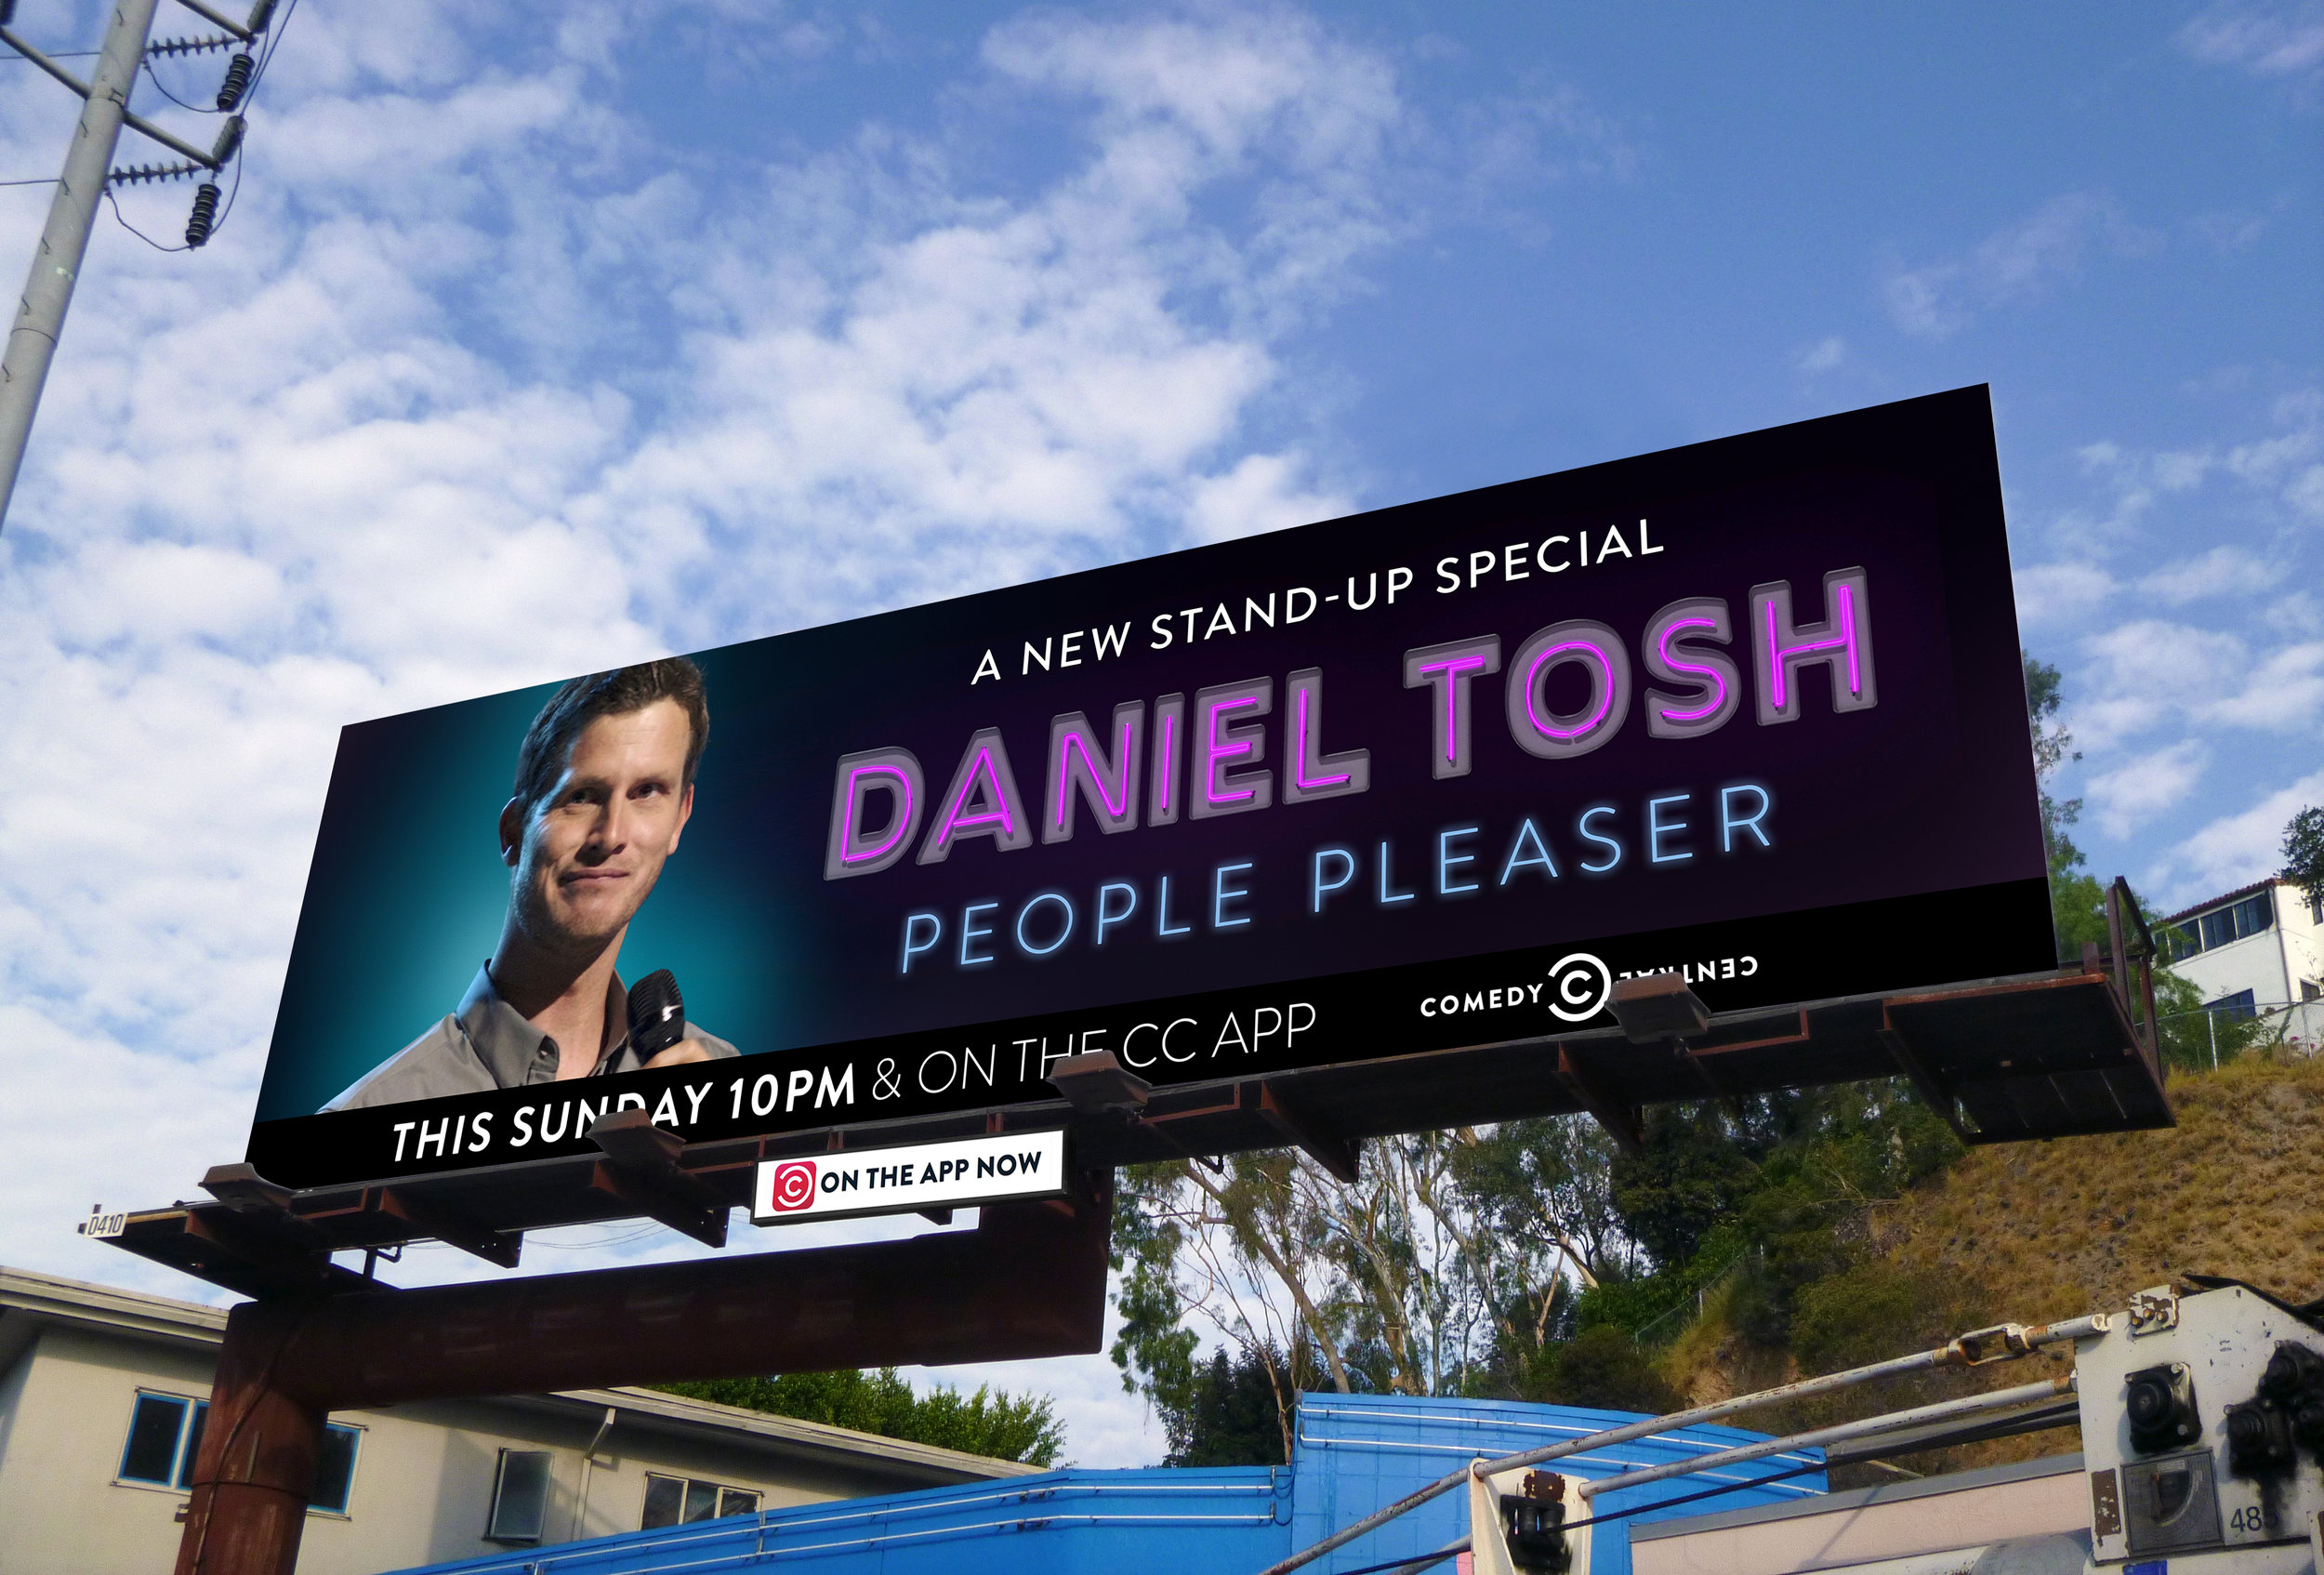 tosh_people_pleaser_la_billboard.jpg